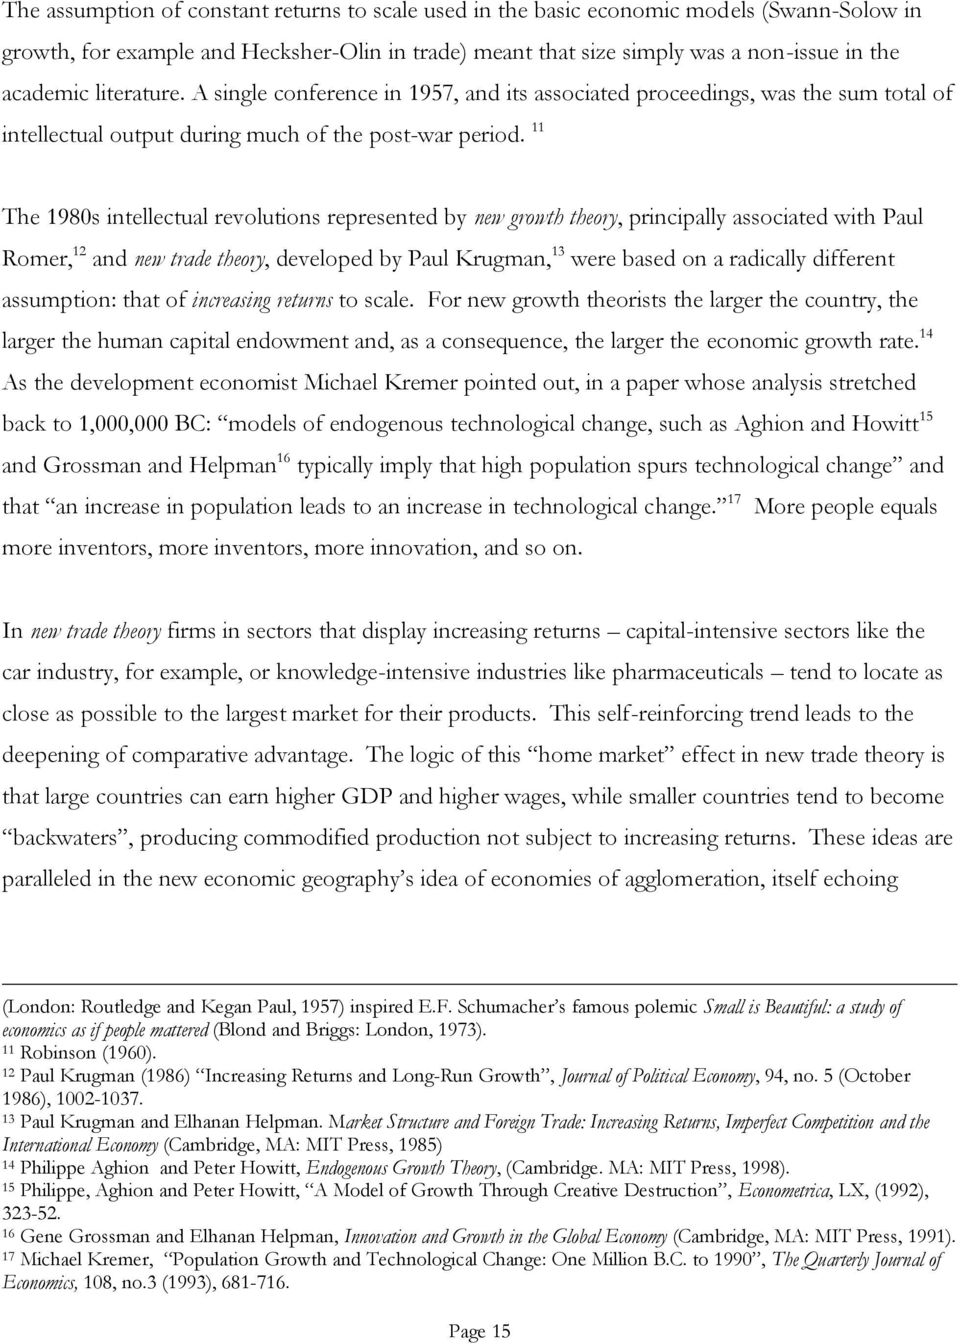 11 The 1980s intellectual revolutions represented by new growth theory, principally associated with Paul Romer, 12 and new trade theory, developed by Paul Krugman, 13 were based on a radically